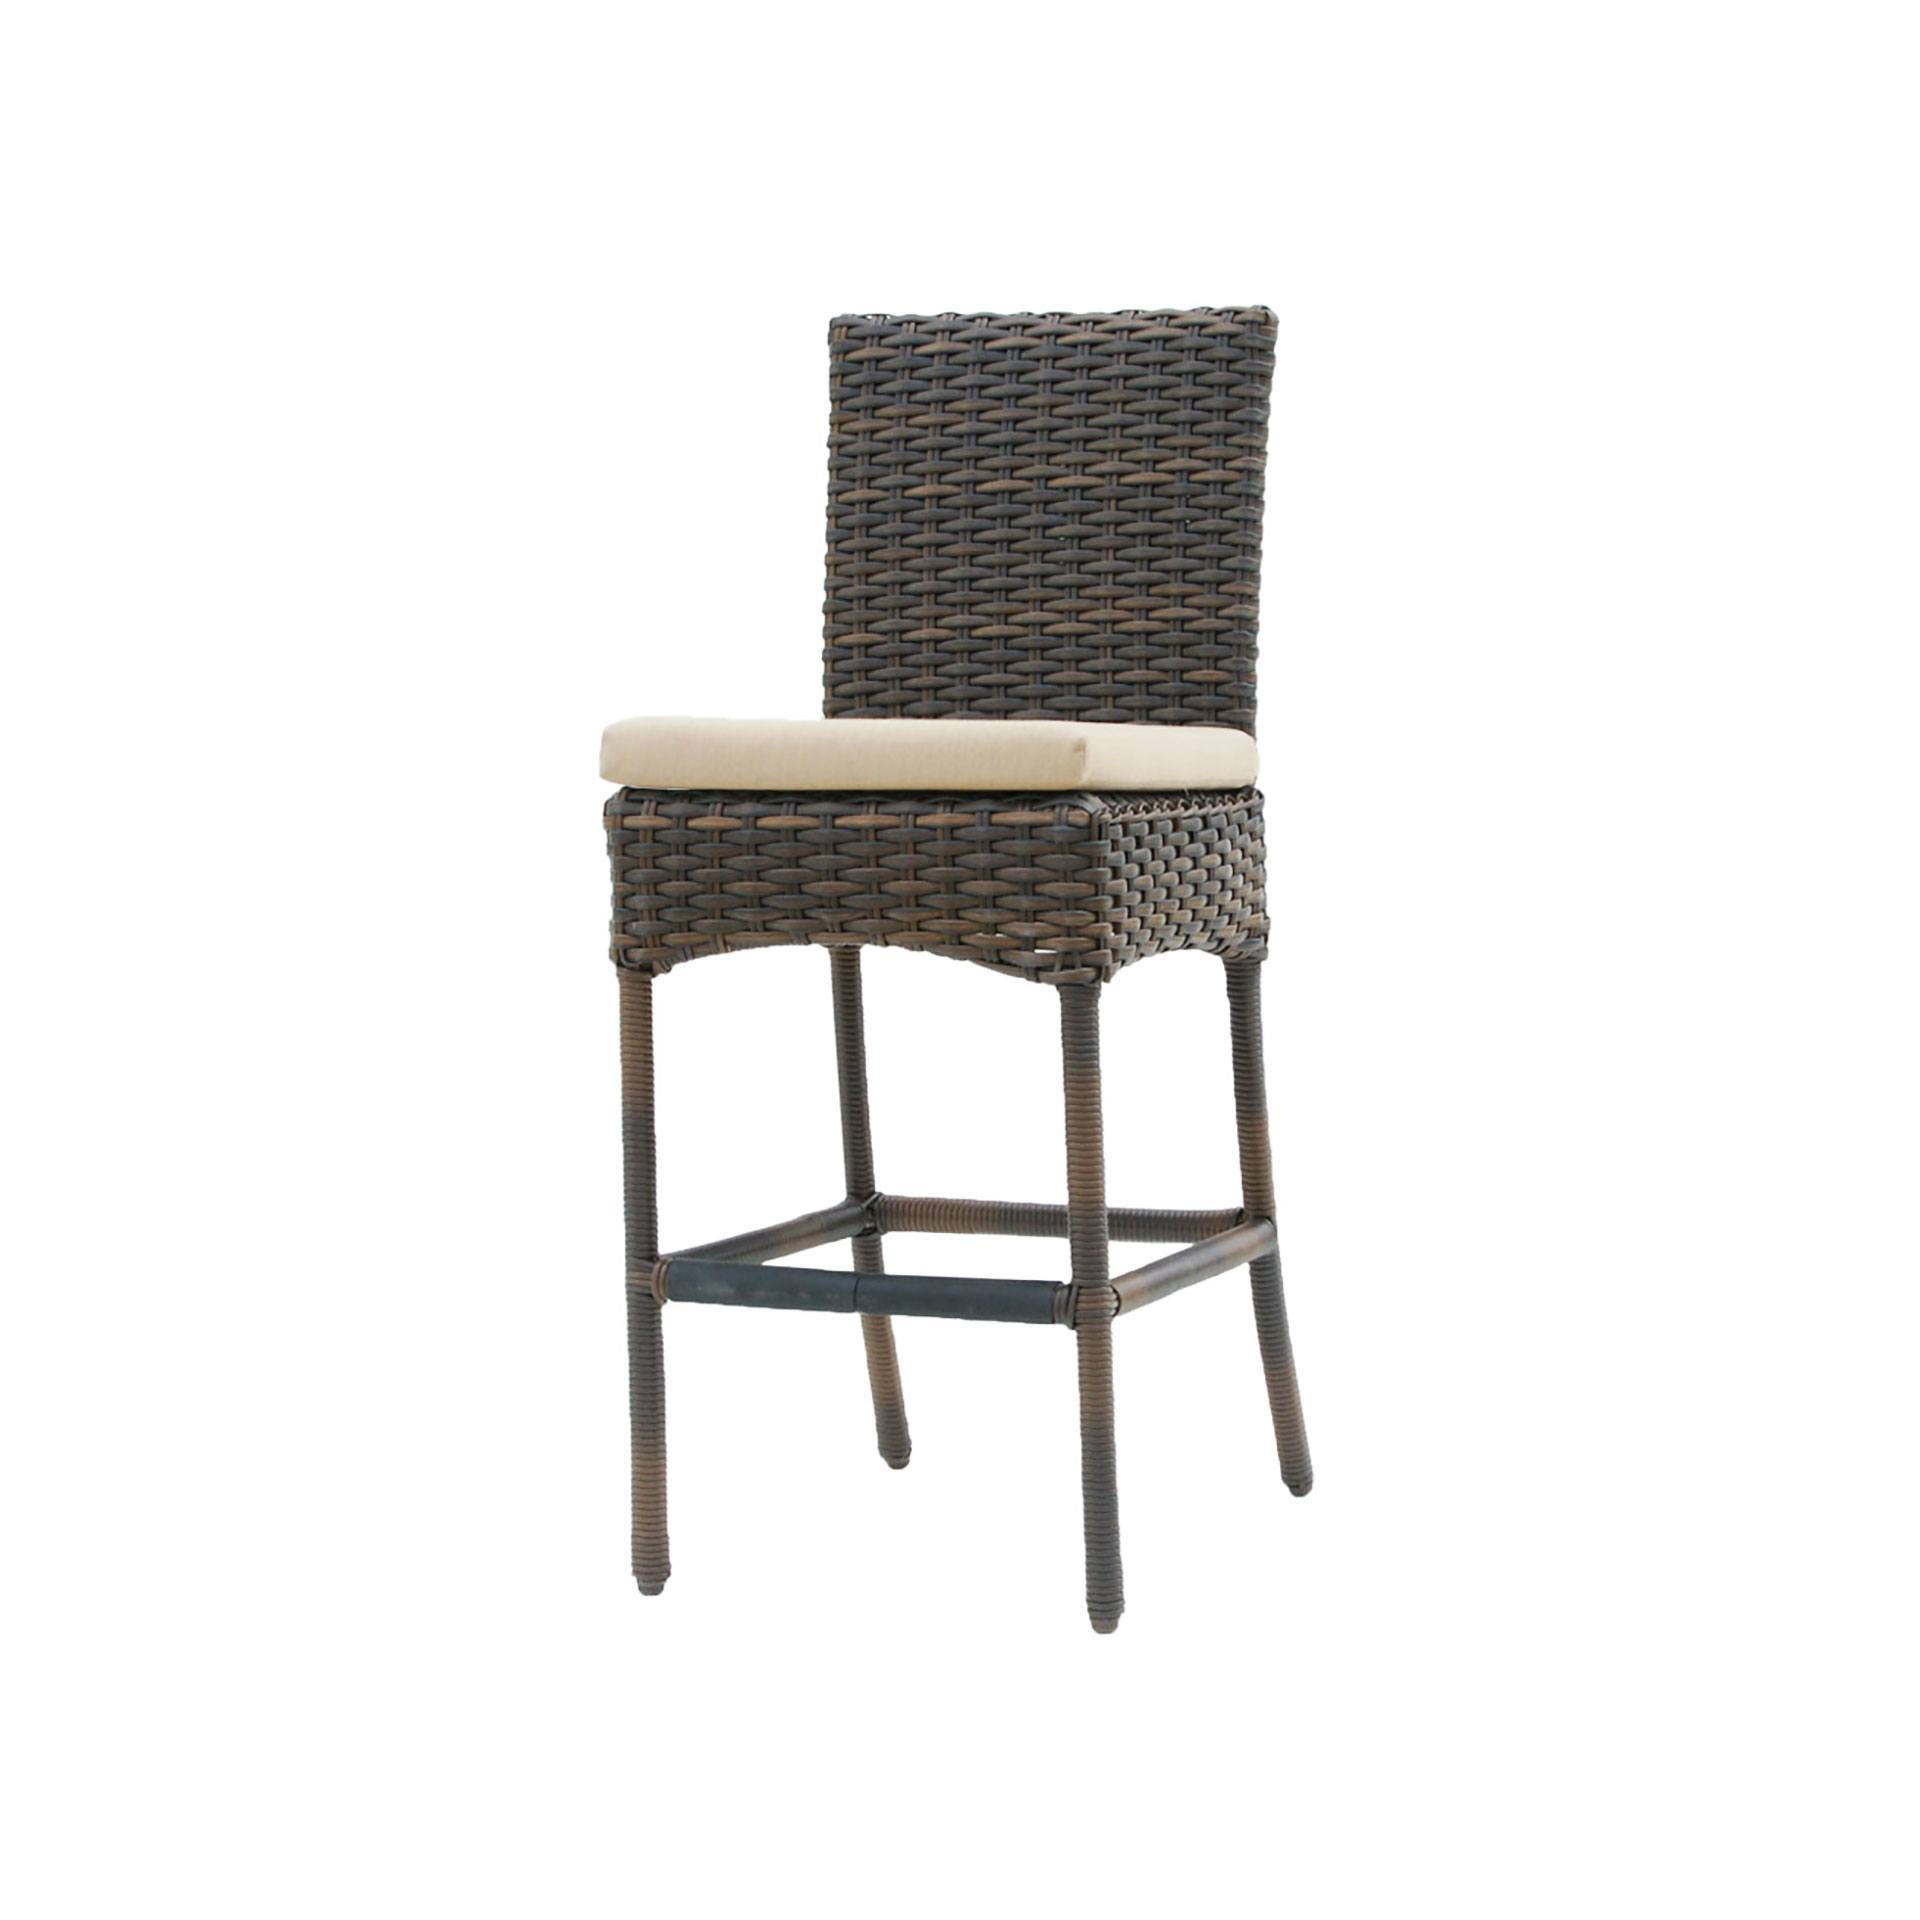 Ratana – Bianca Bar Chairs – Aluminum